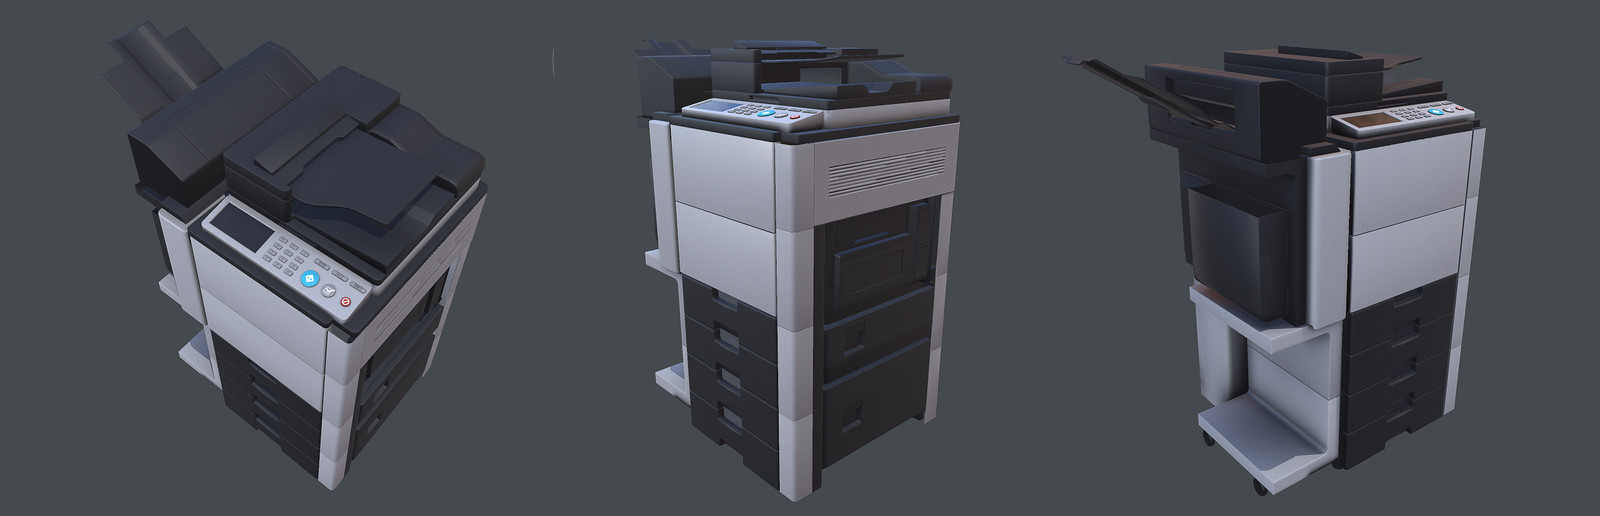 Photocopier Machine 14 [low]